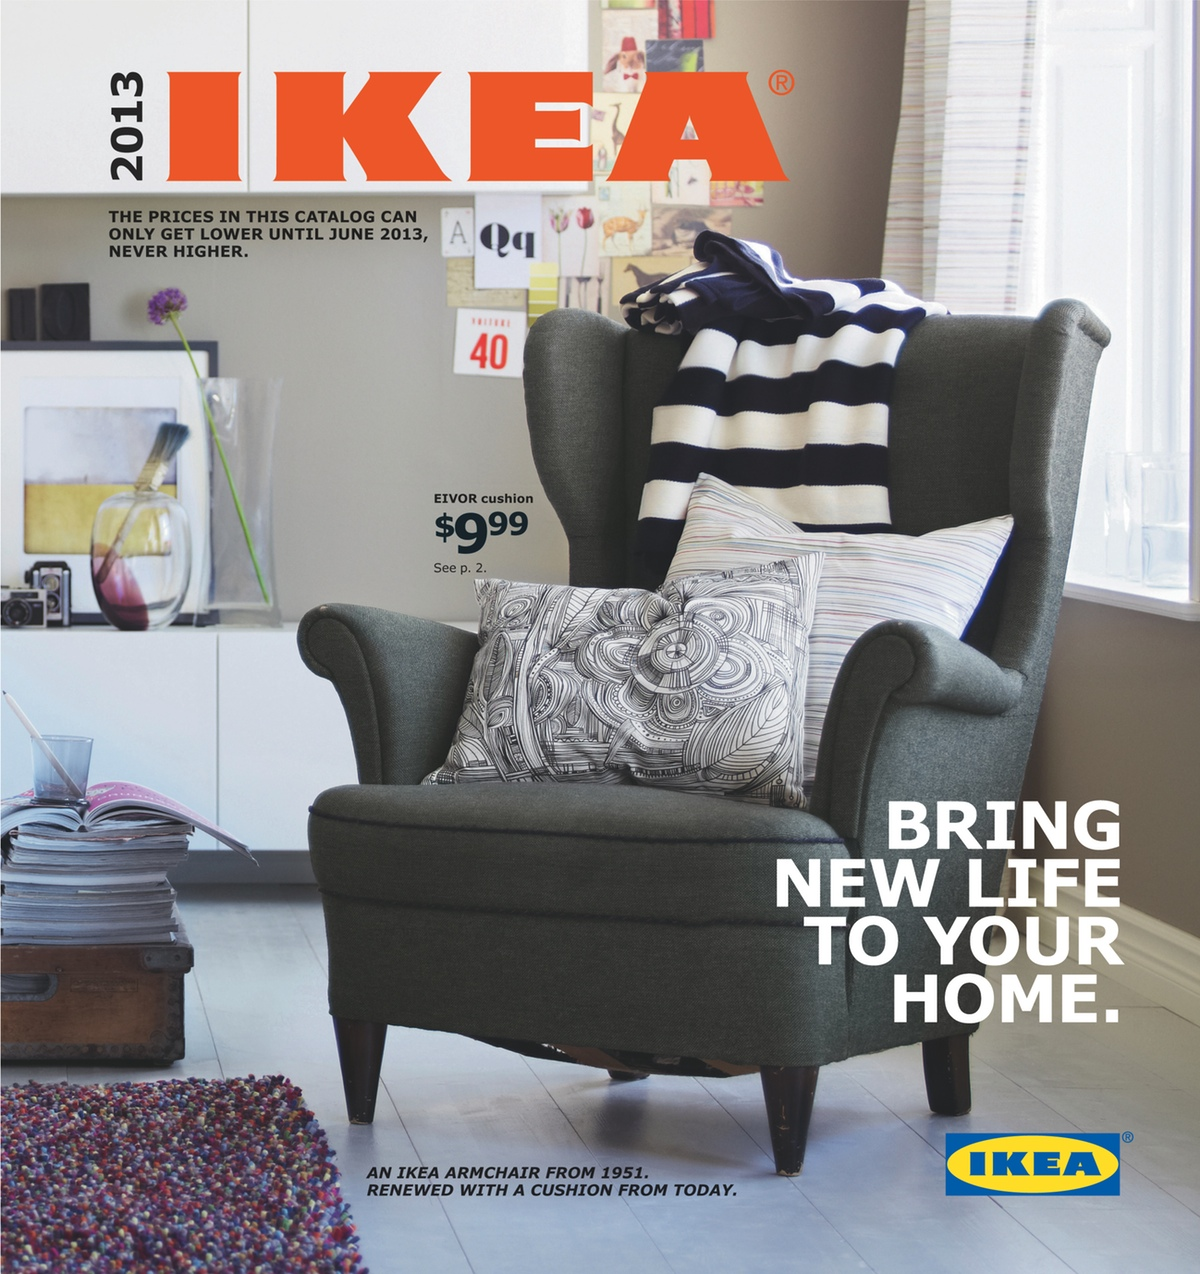 9808 to ikea or not to ikea